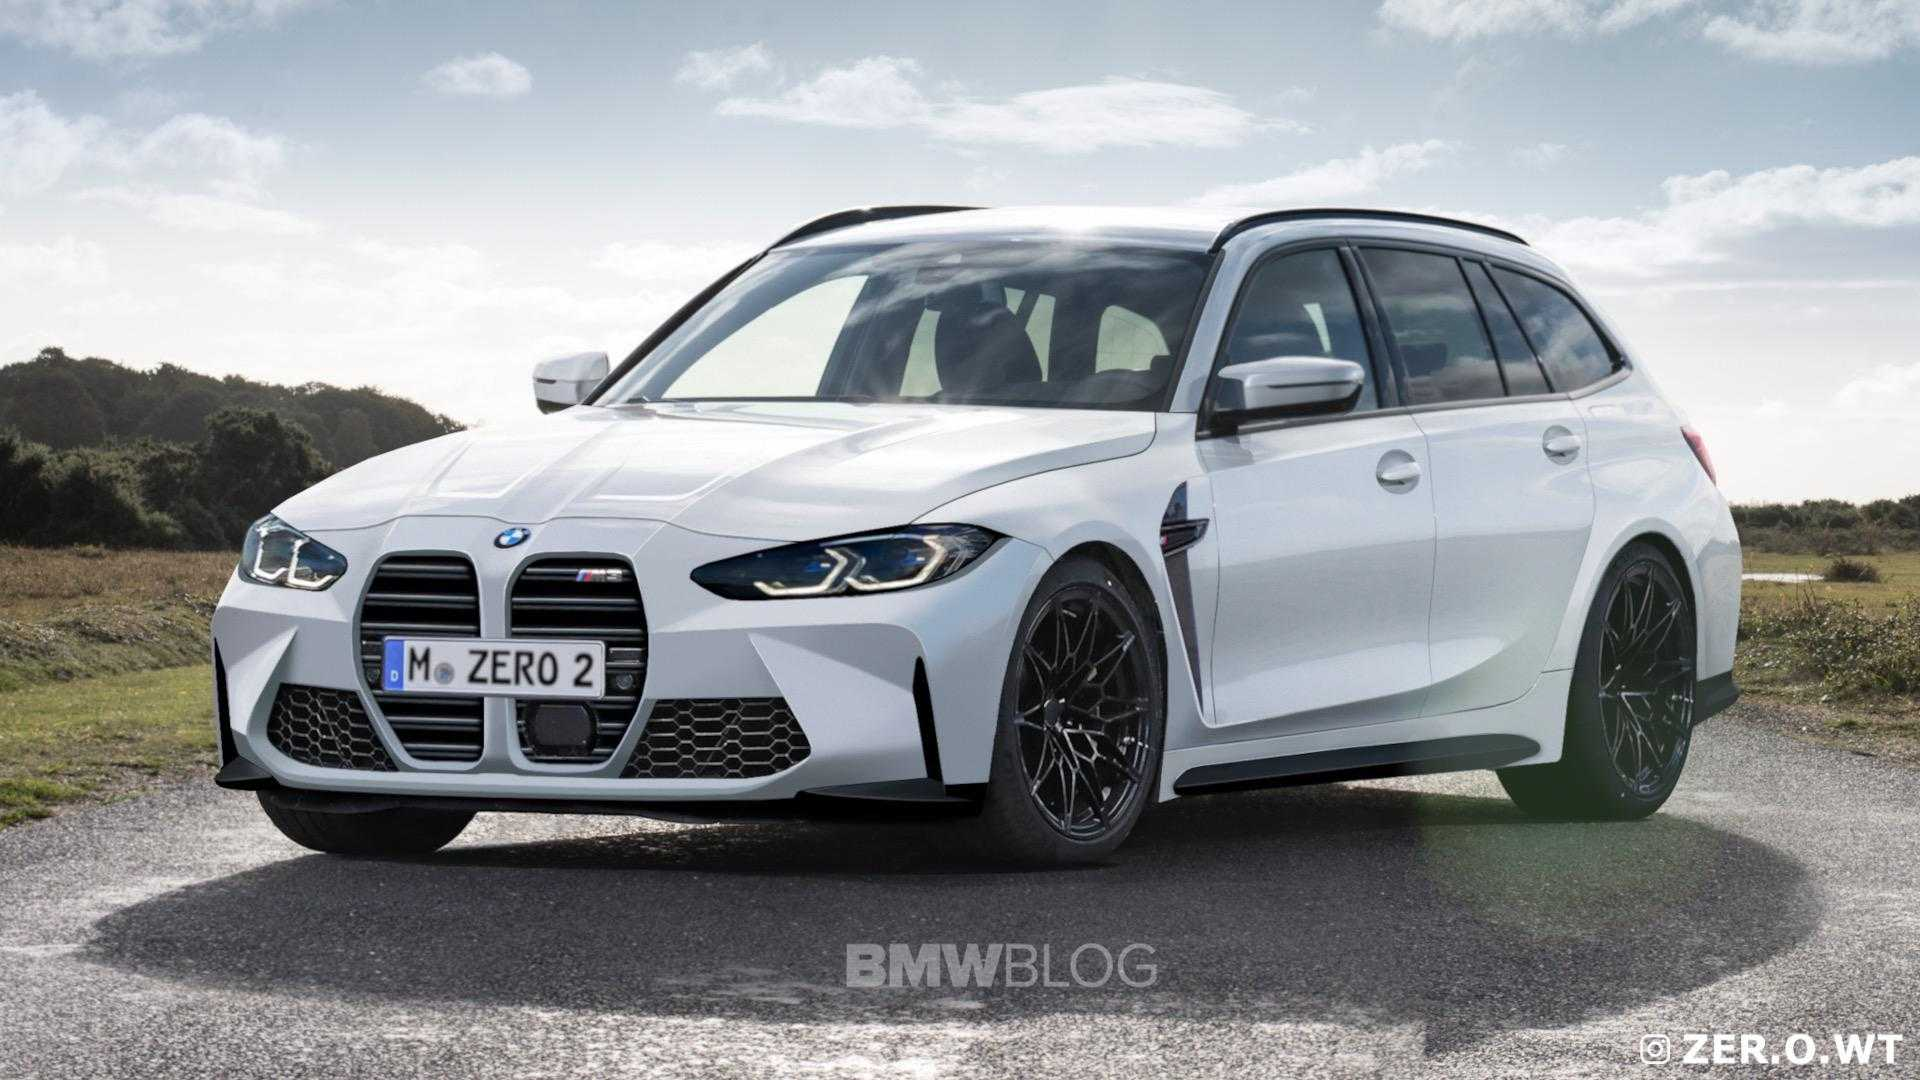 BMW M3 Touring Initial Rendered Image Revealed